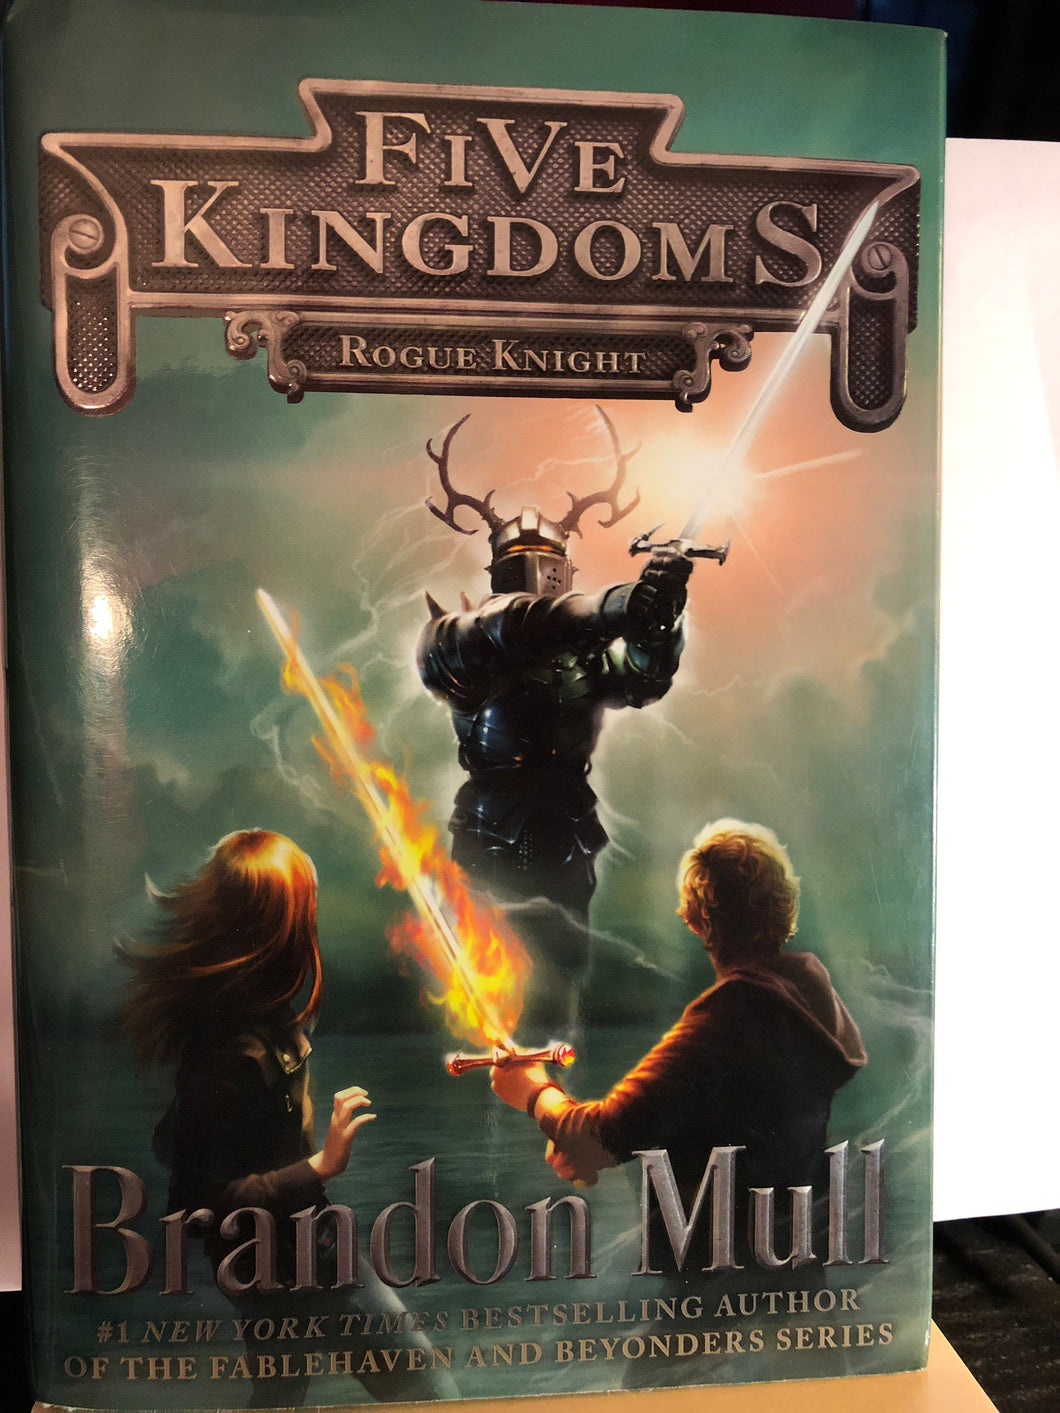 Rogue Knight  by Brandon Mull  (Five Kingdoms #2)  Hardcover